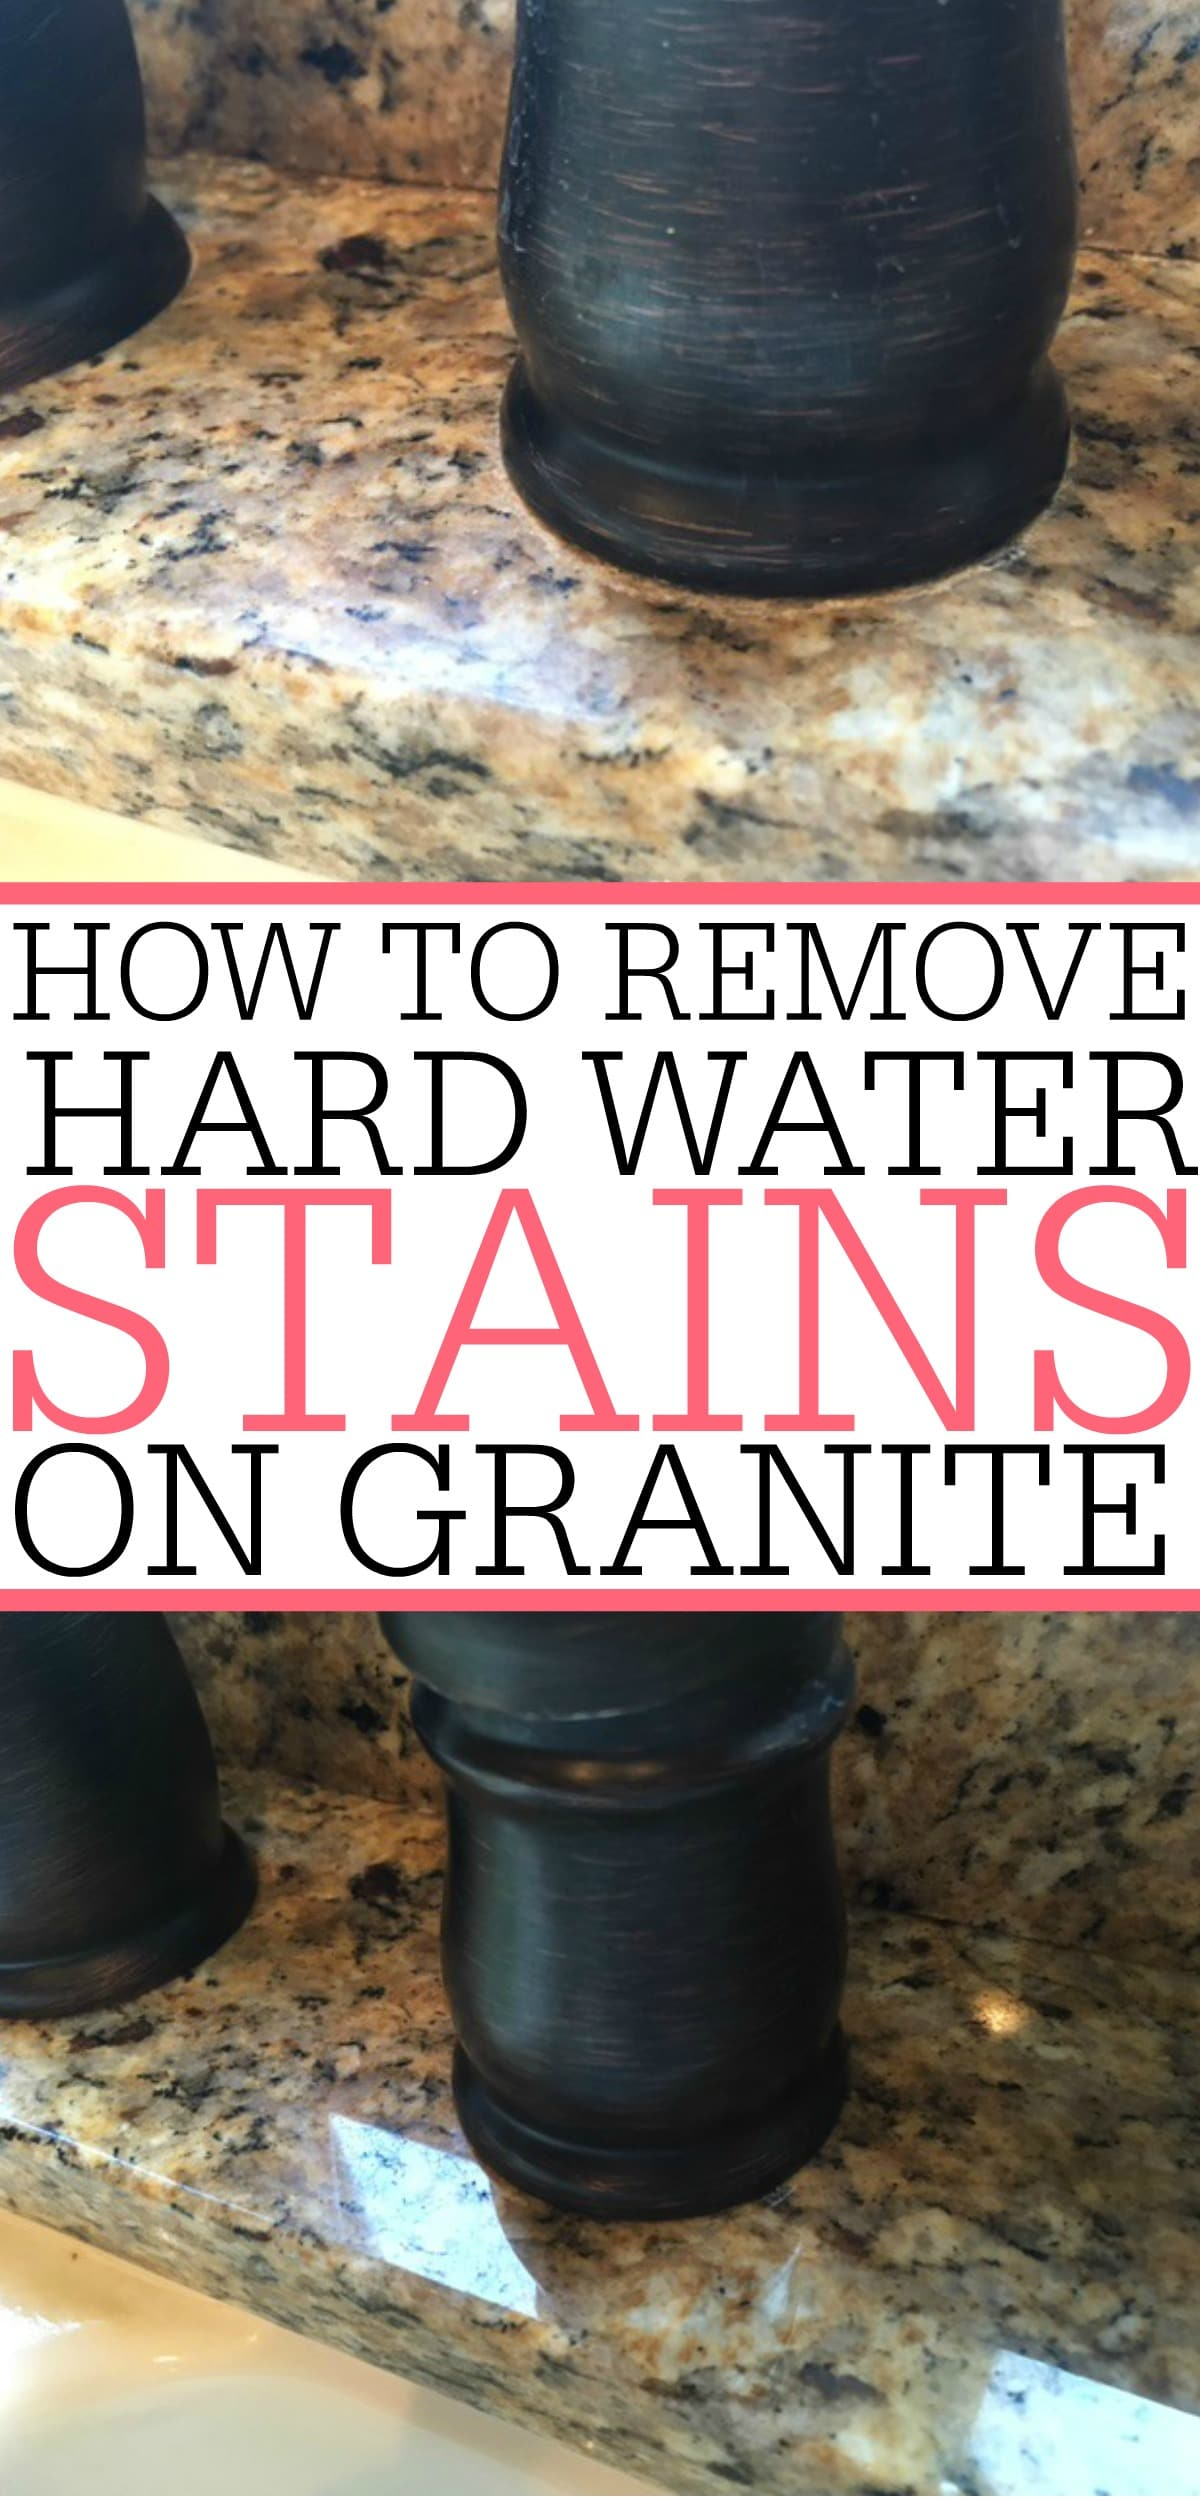 How To Remove A Water Stain On Granite - Frugally Blonde